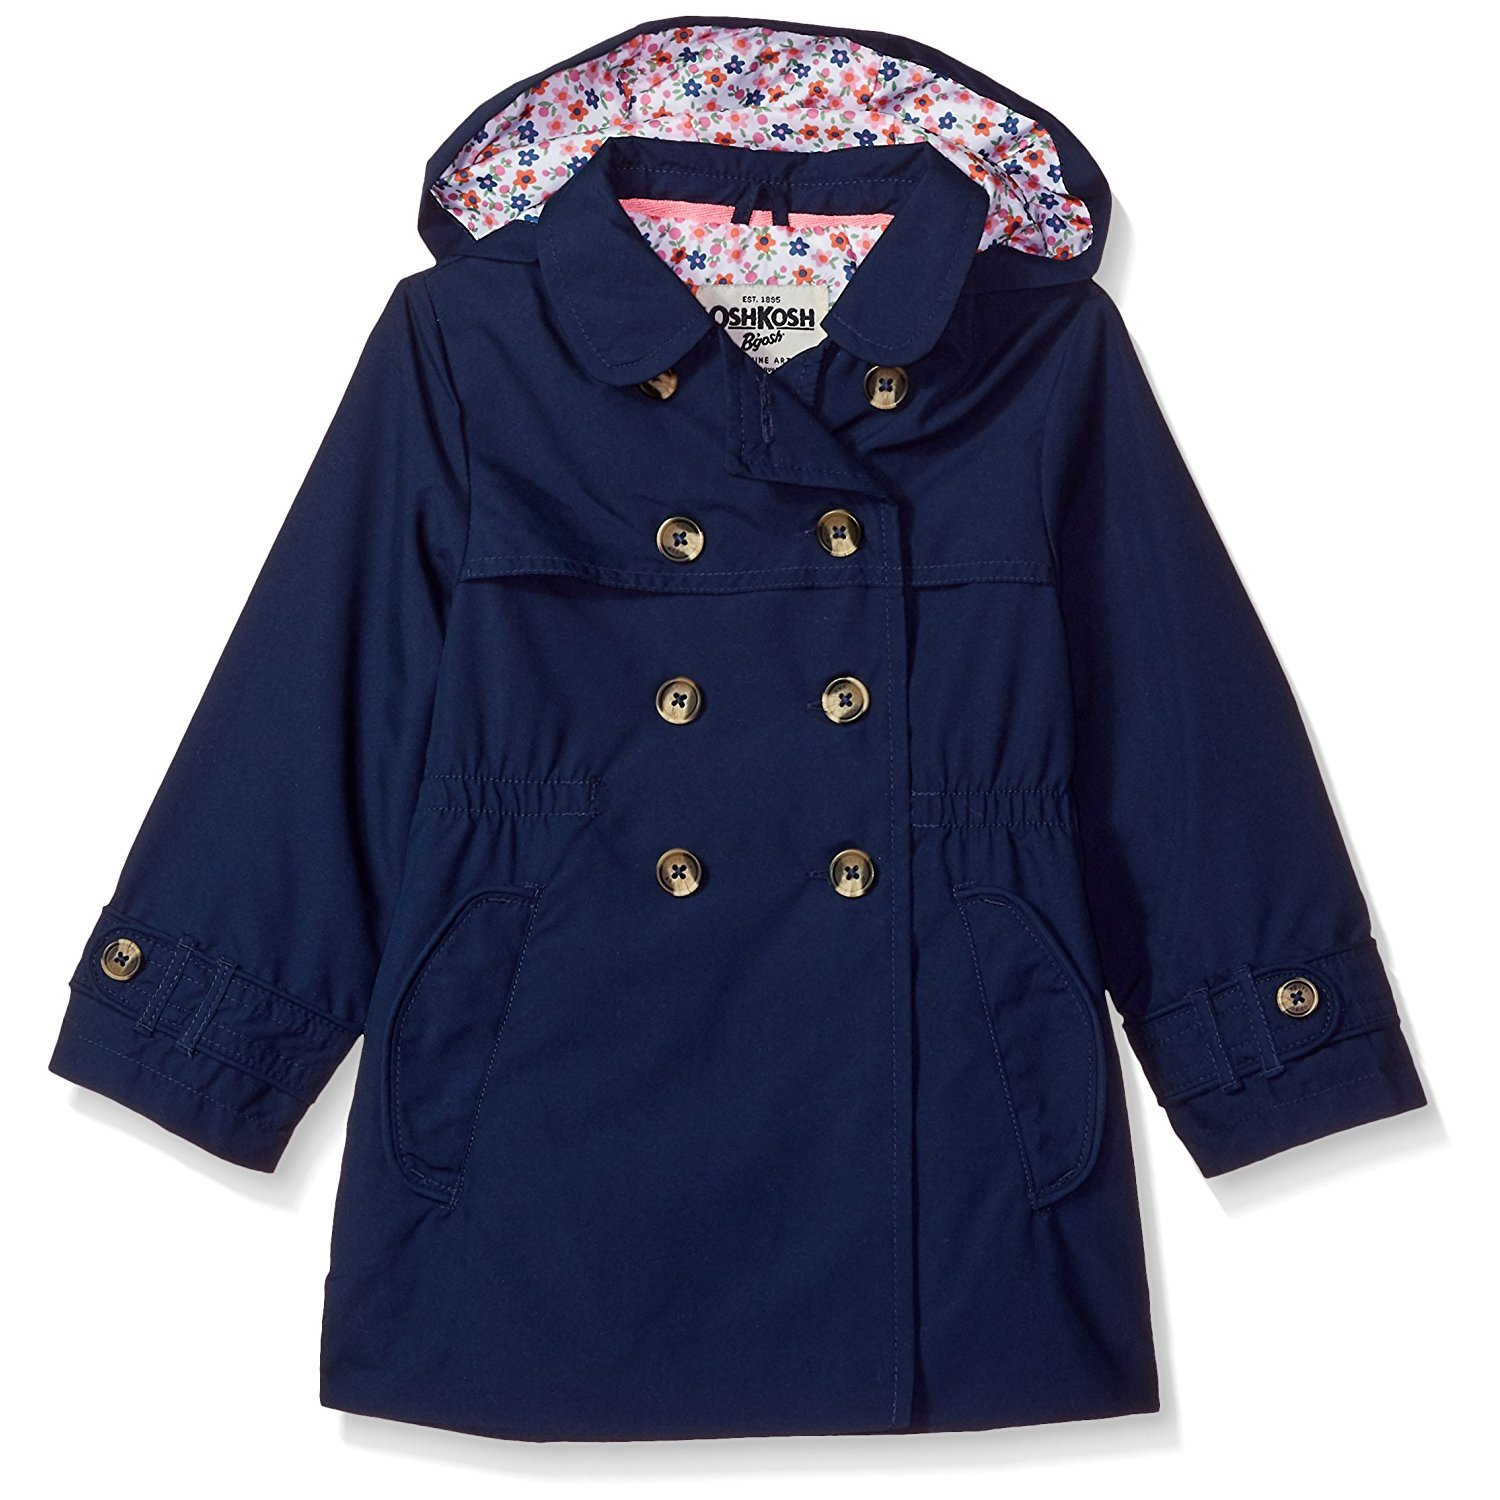 Osh Kosh Girls' Toddler Hooded Trench Coat, Current Navy, 3T